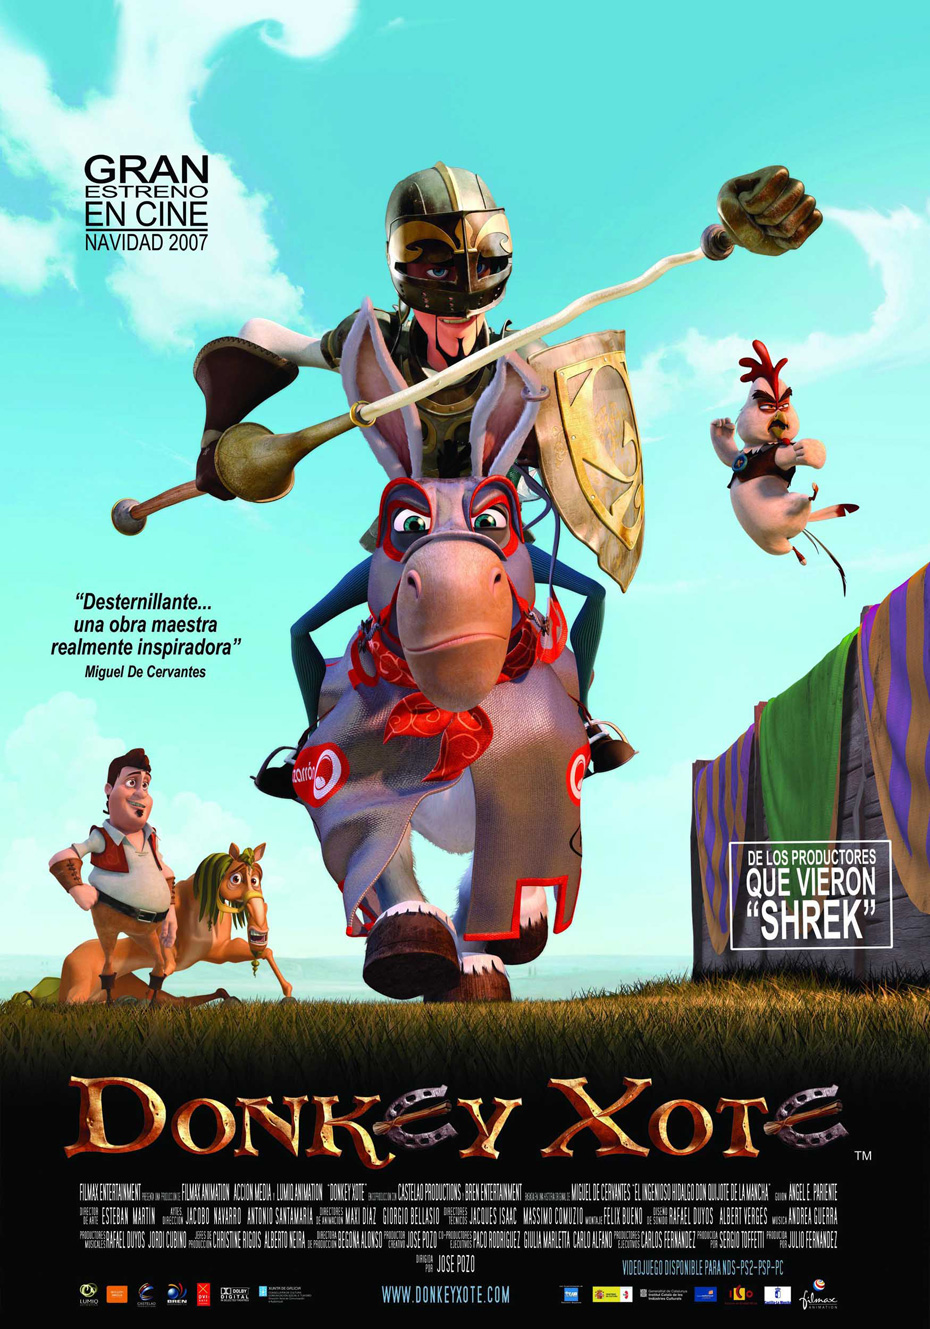 Donkey Xote movie